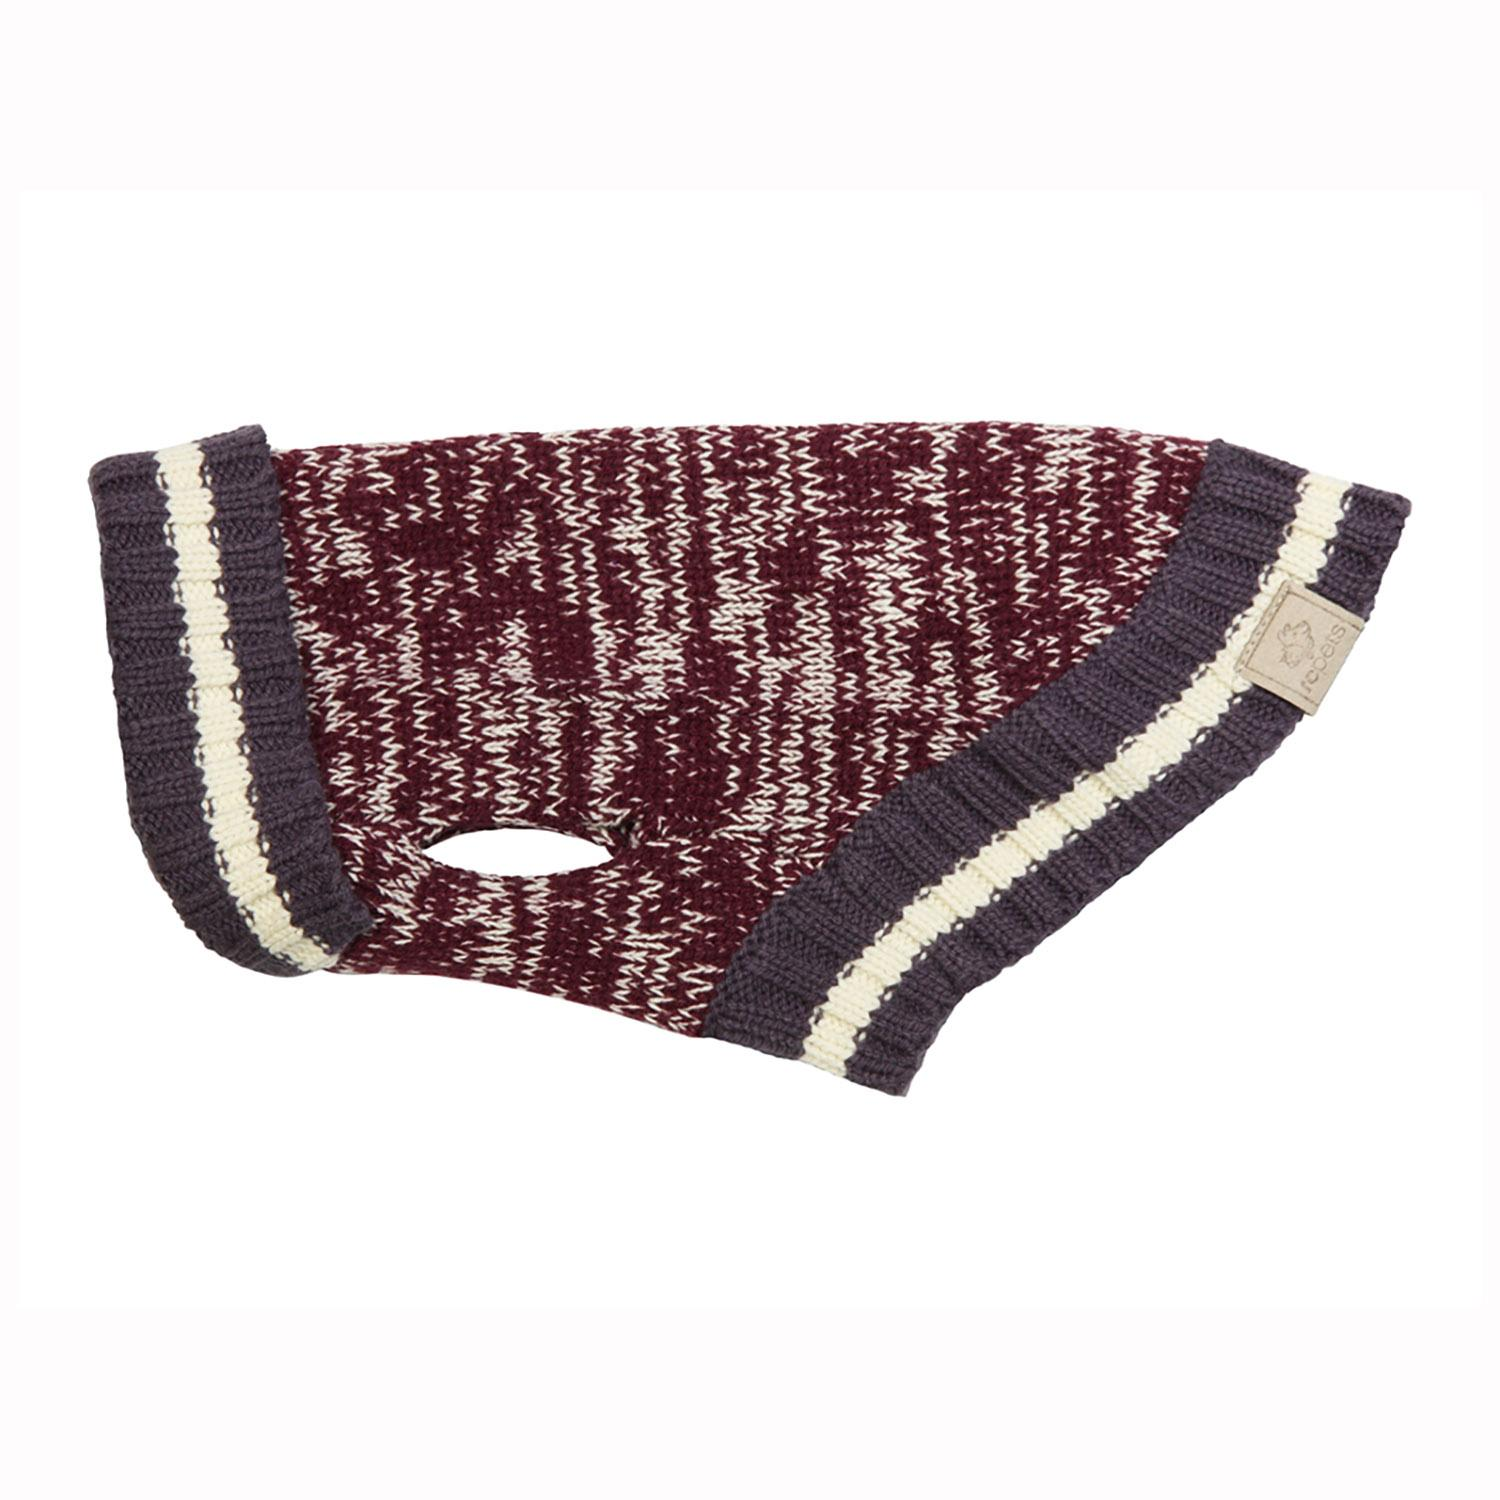 Cabin Dog Sweater by RC Pet - Burgundy Melange